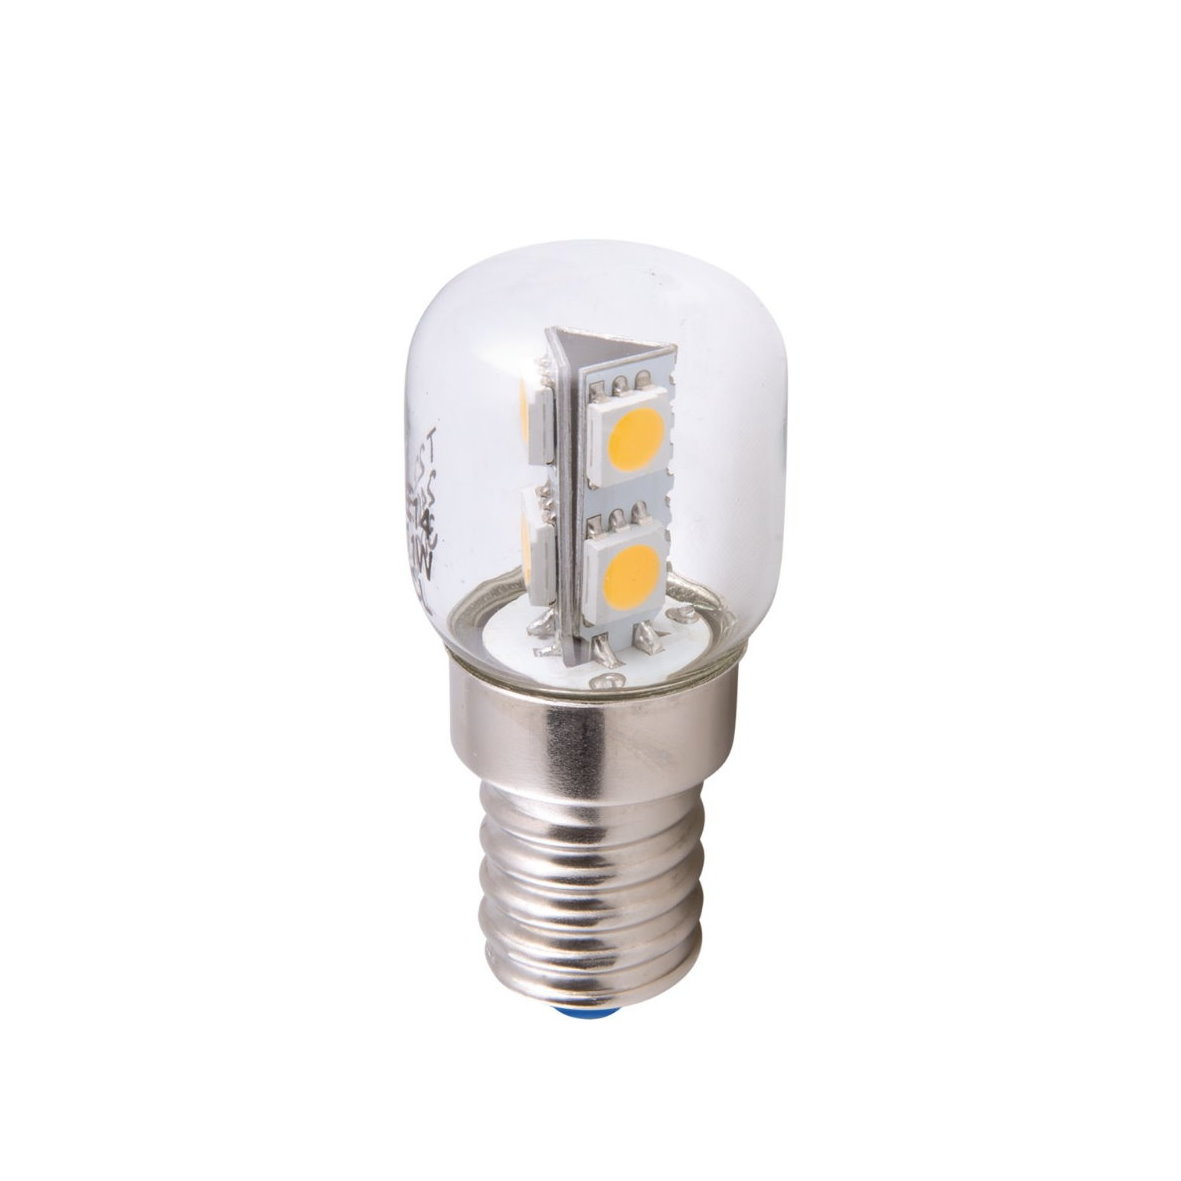 Smd Led Illuminant Mini E14 Candle Bulb Compact Small Spotlight 50 85mm Ebay